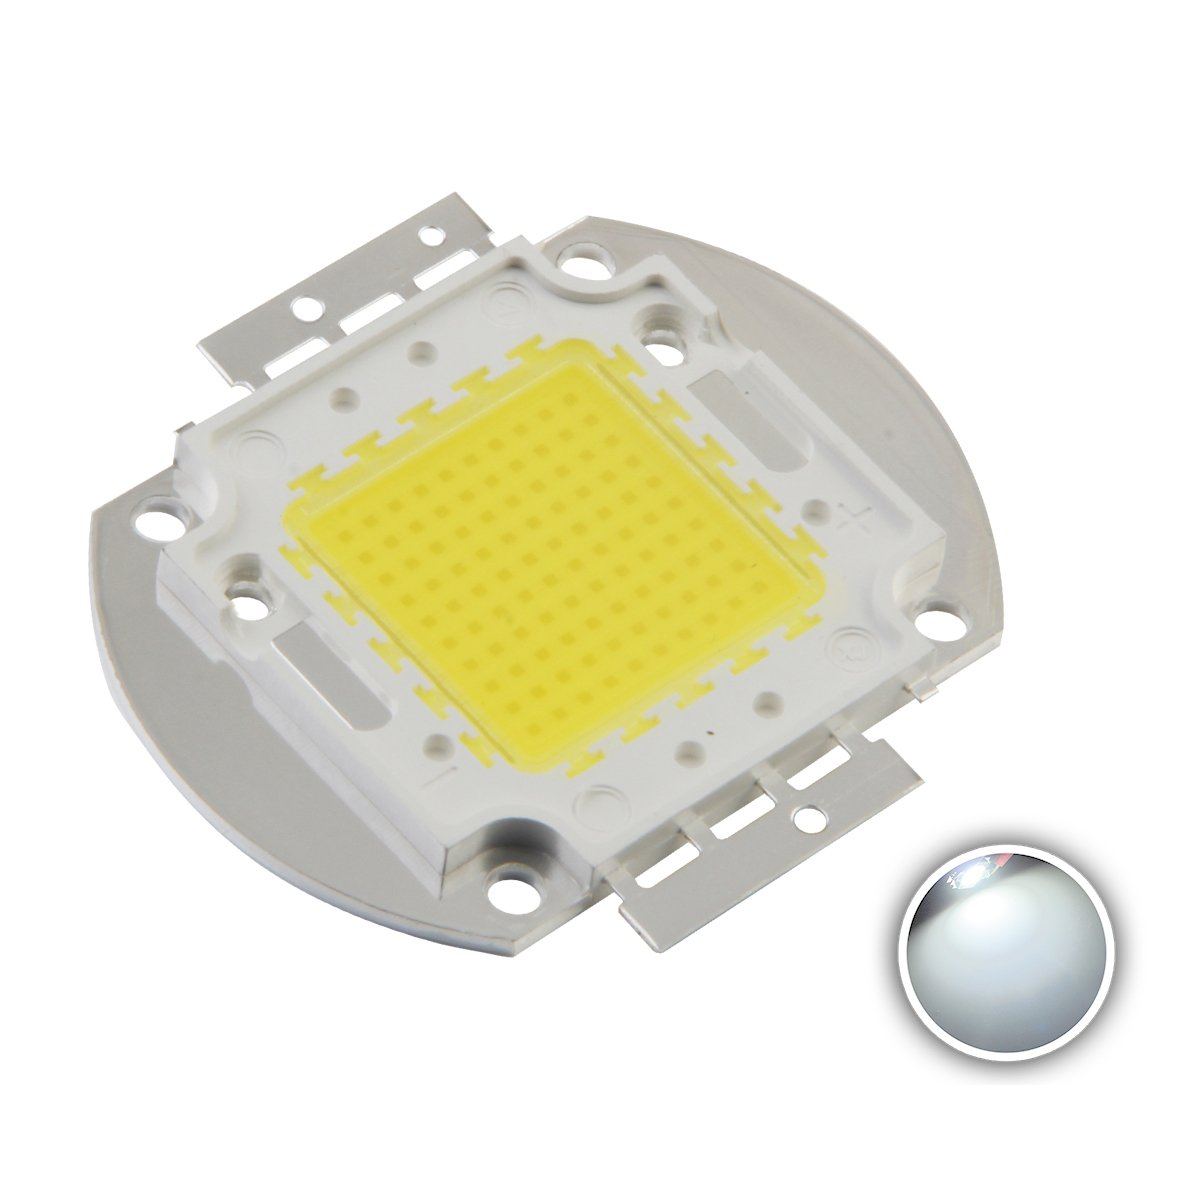 Chanzon High Power Led Chip 100W White (6000K-6500K/3000mA/DC 30V-34V/100 Watt) Super Bright Intensity SMD COB Light Emitter Components Diode 100 W Bulb Lamp Beads DIY Lighting by CHANZON